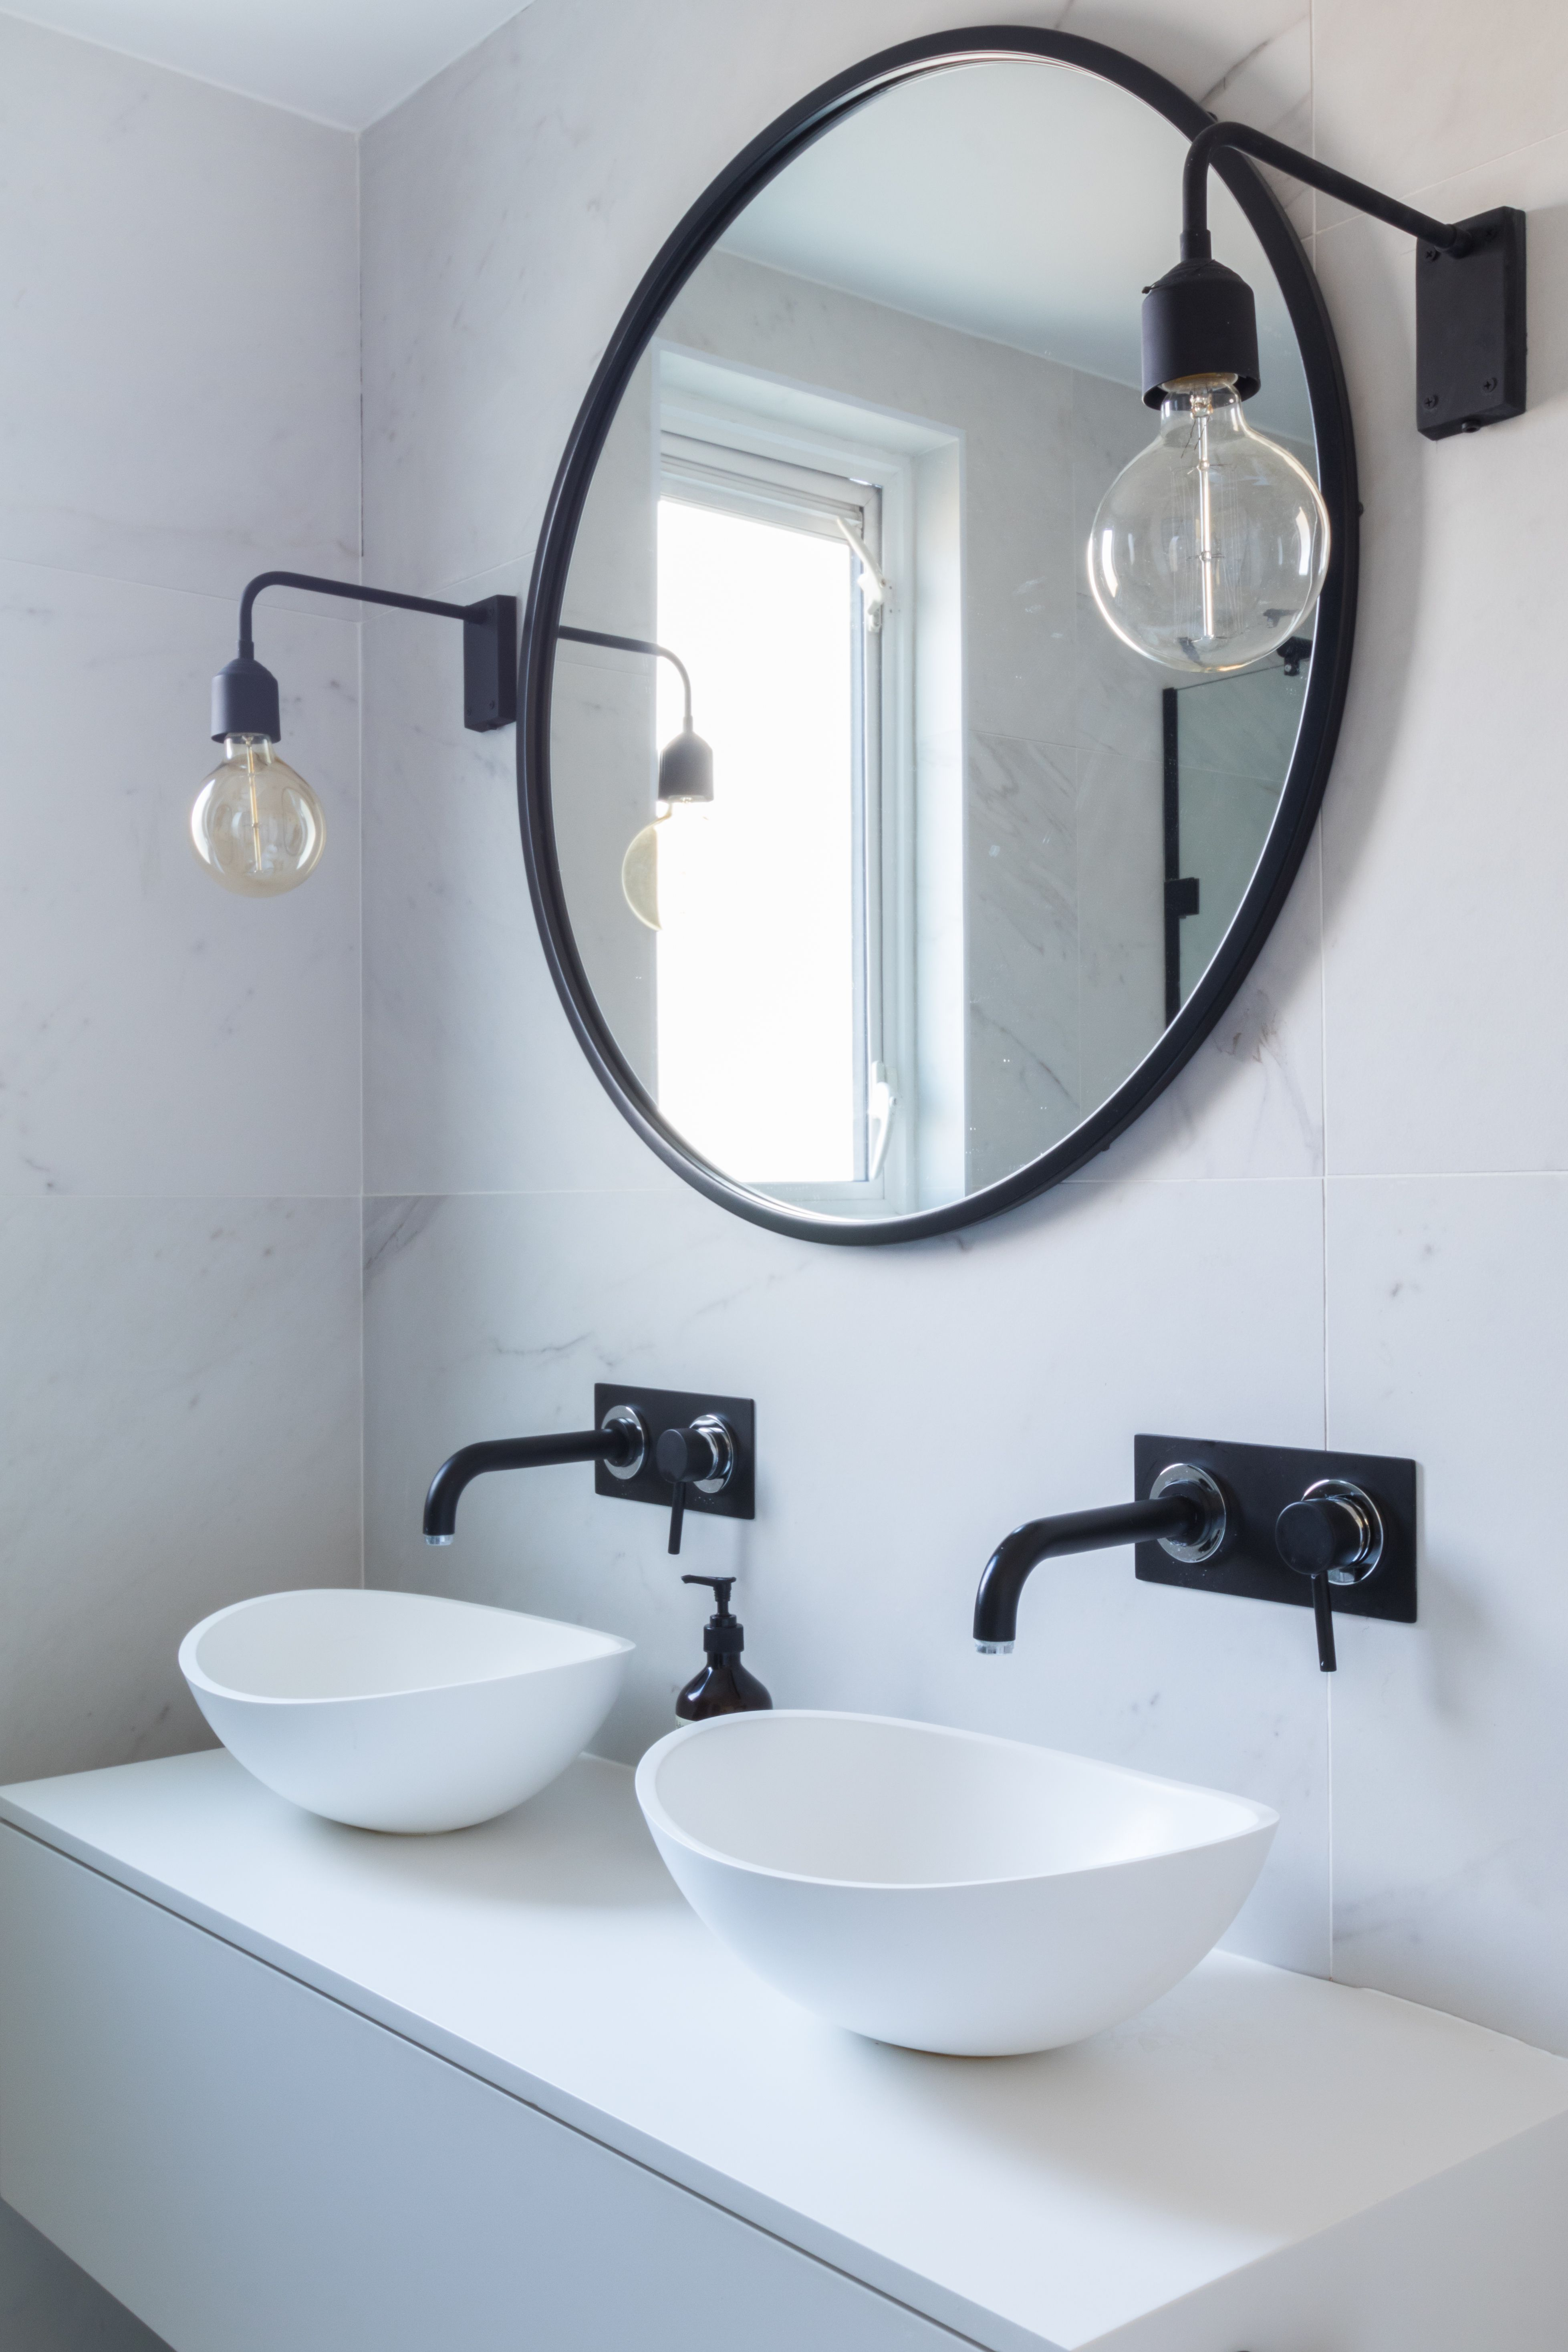 Bathroom, marble tiles, marble, black and white bathroom